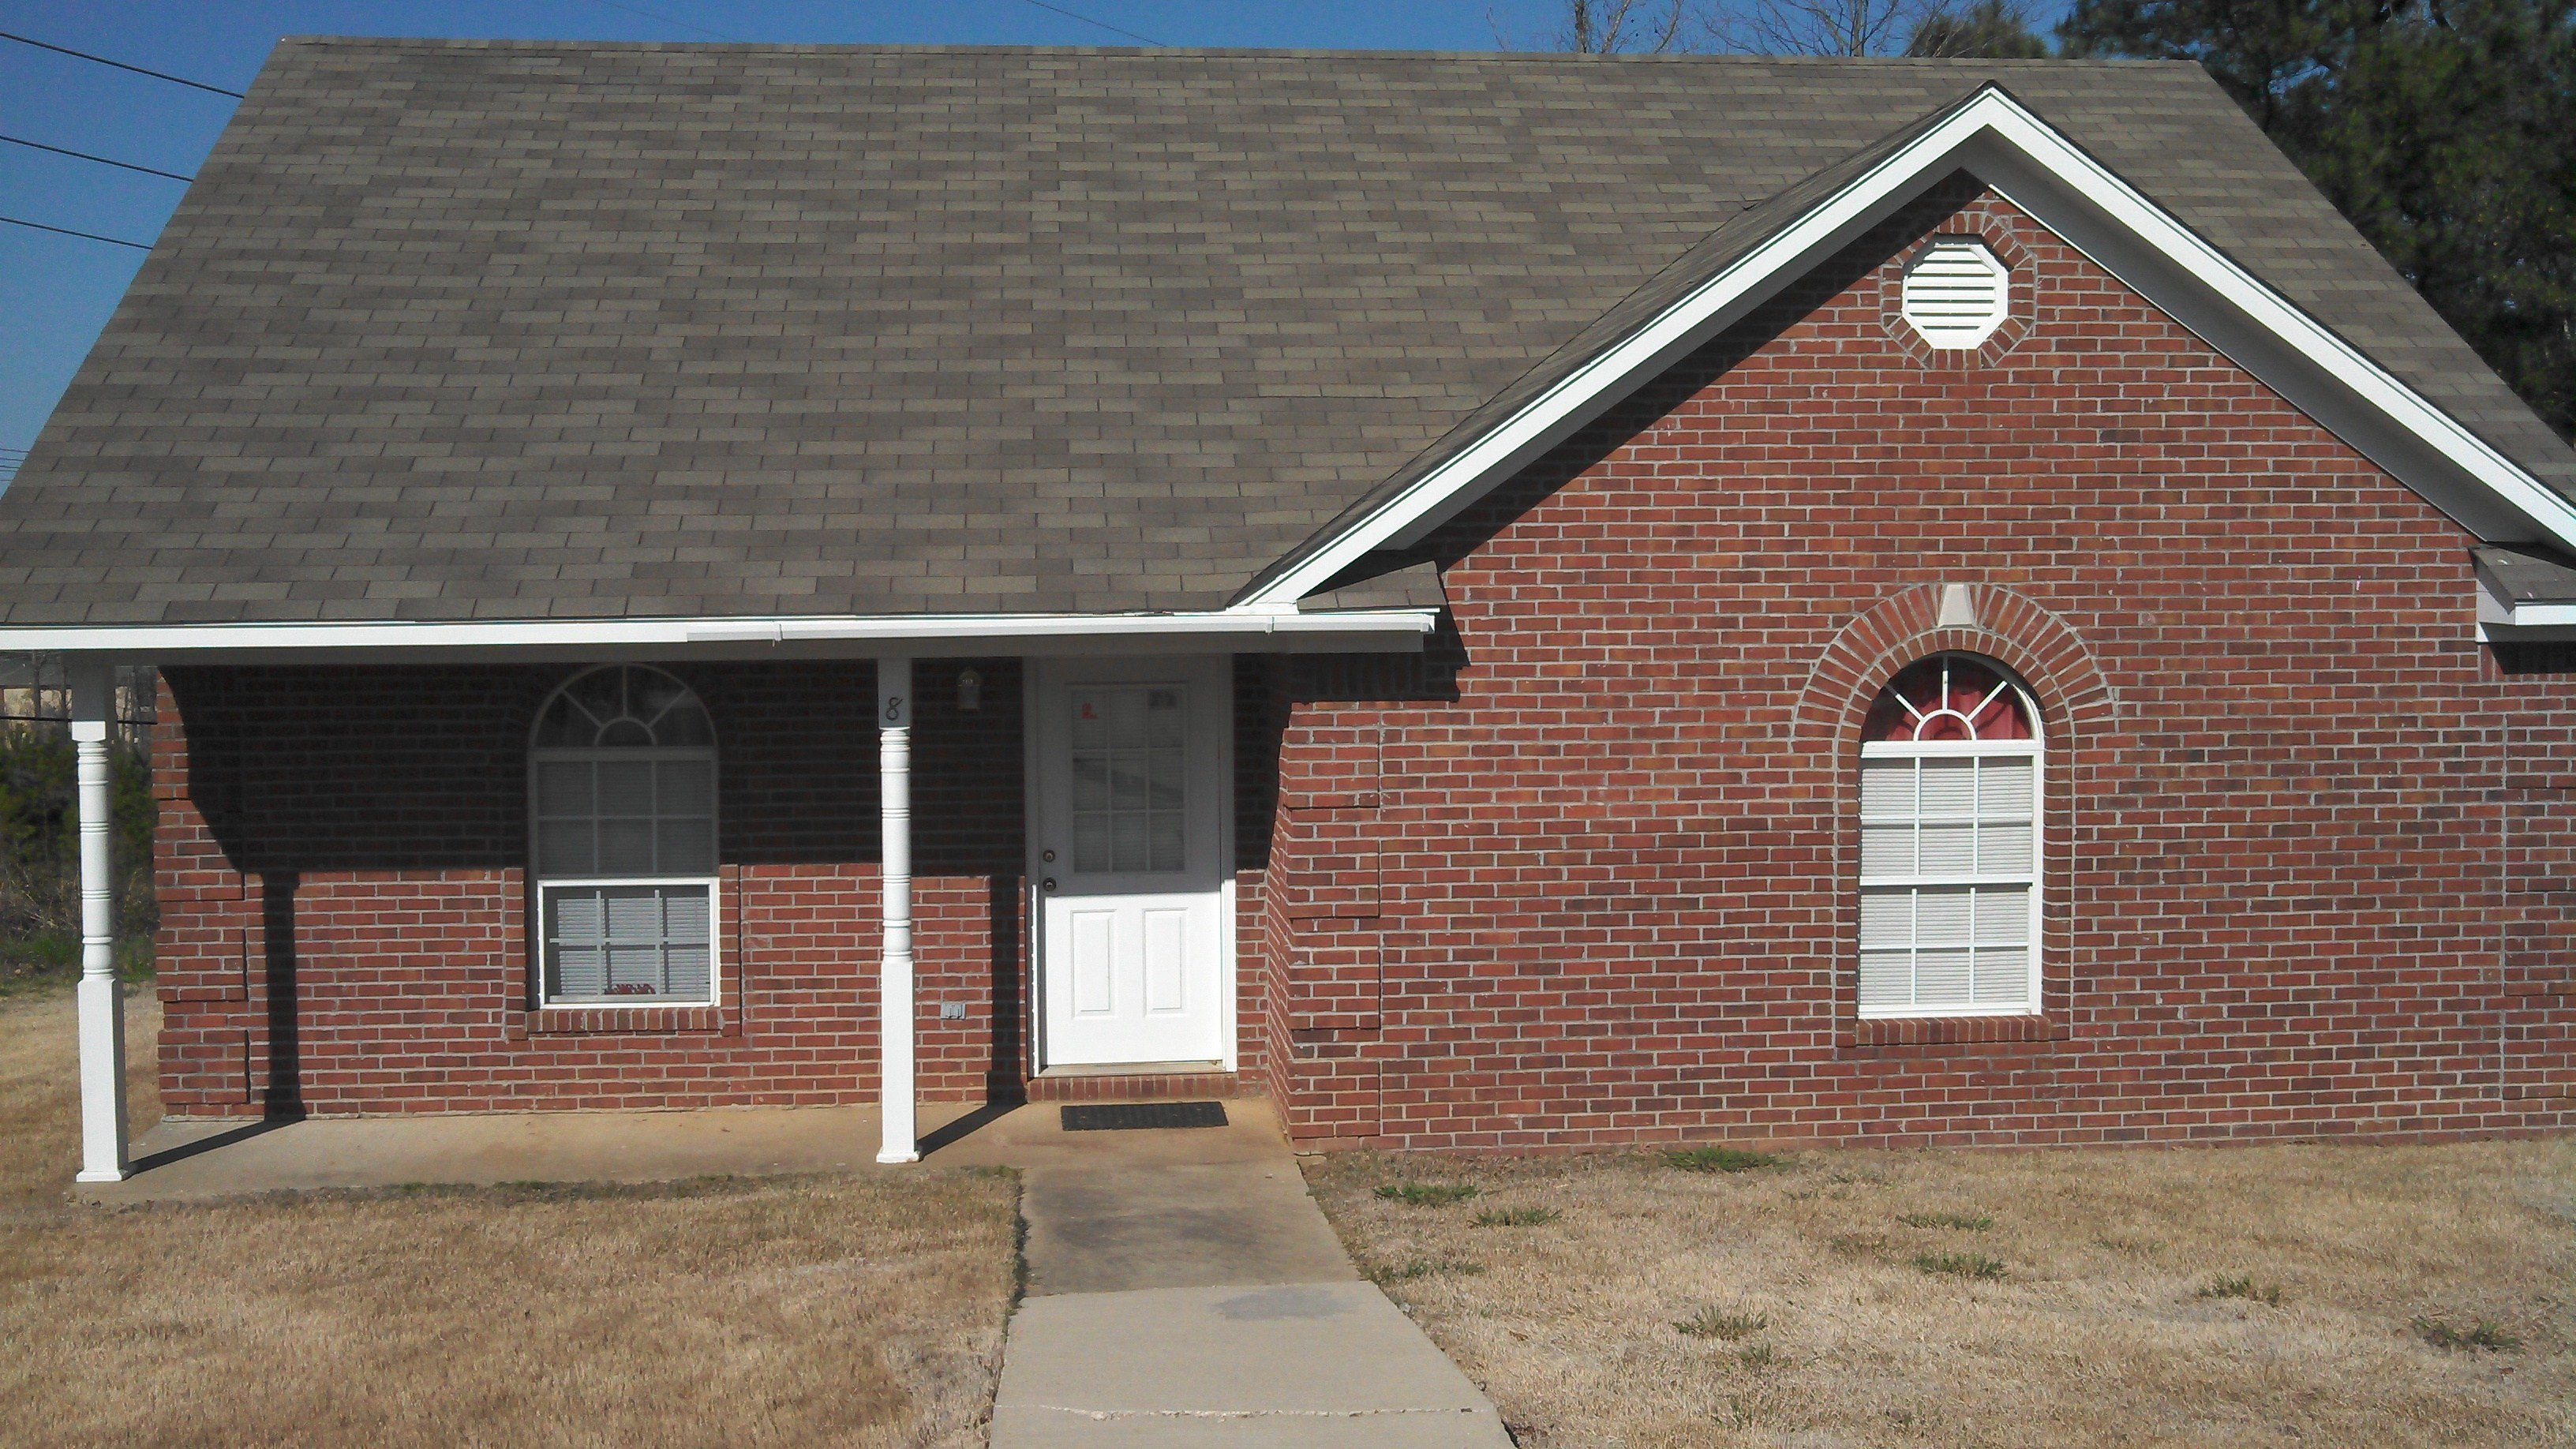 Best Two Bedroom Houses Specializing In Residential Rentals Oxford Ms Rentals With Pictures